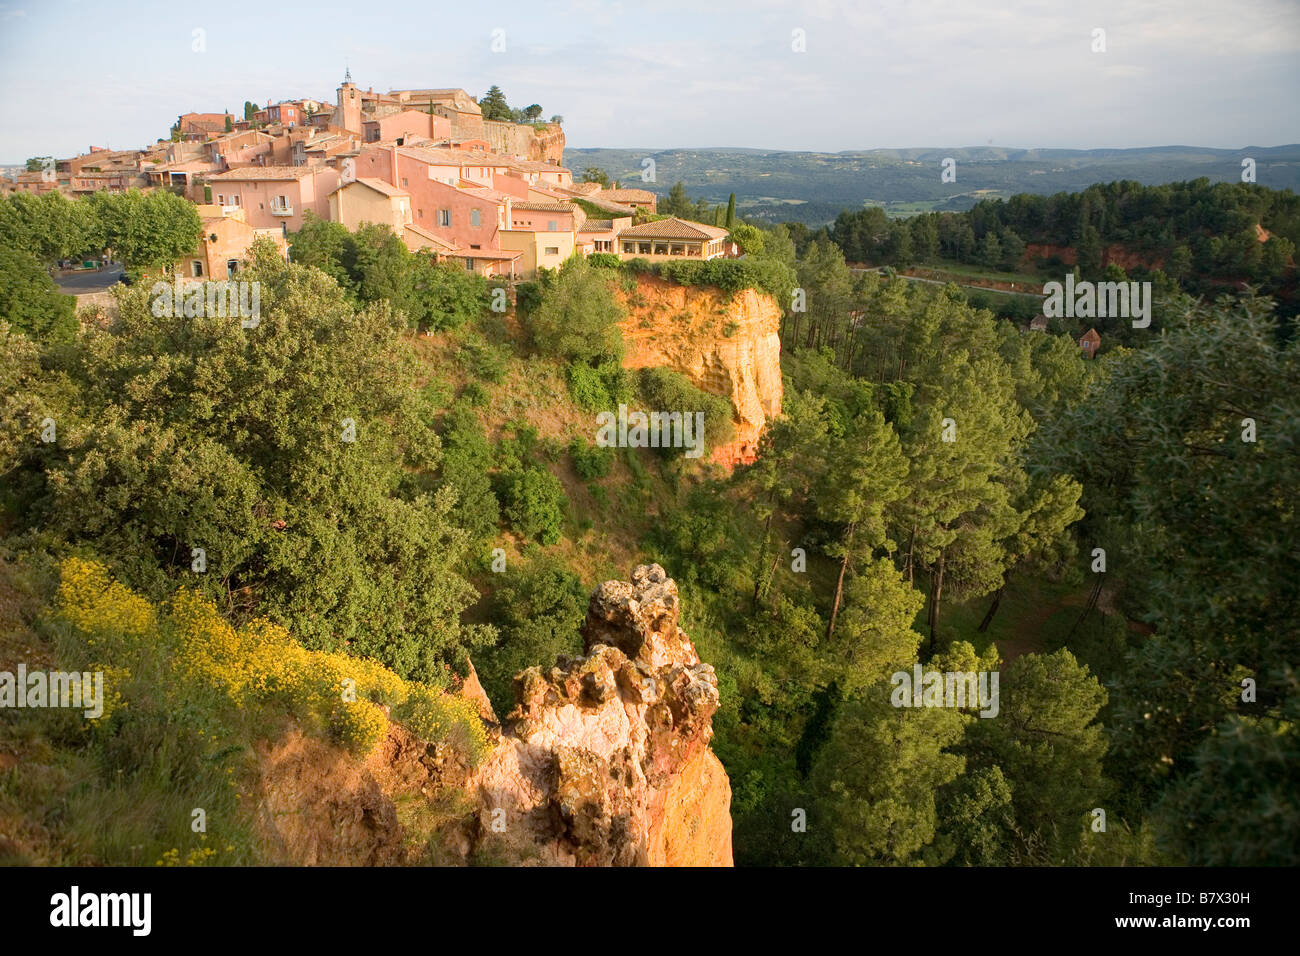 The town of Roussillon set atop ochre cliffs - Stock Image